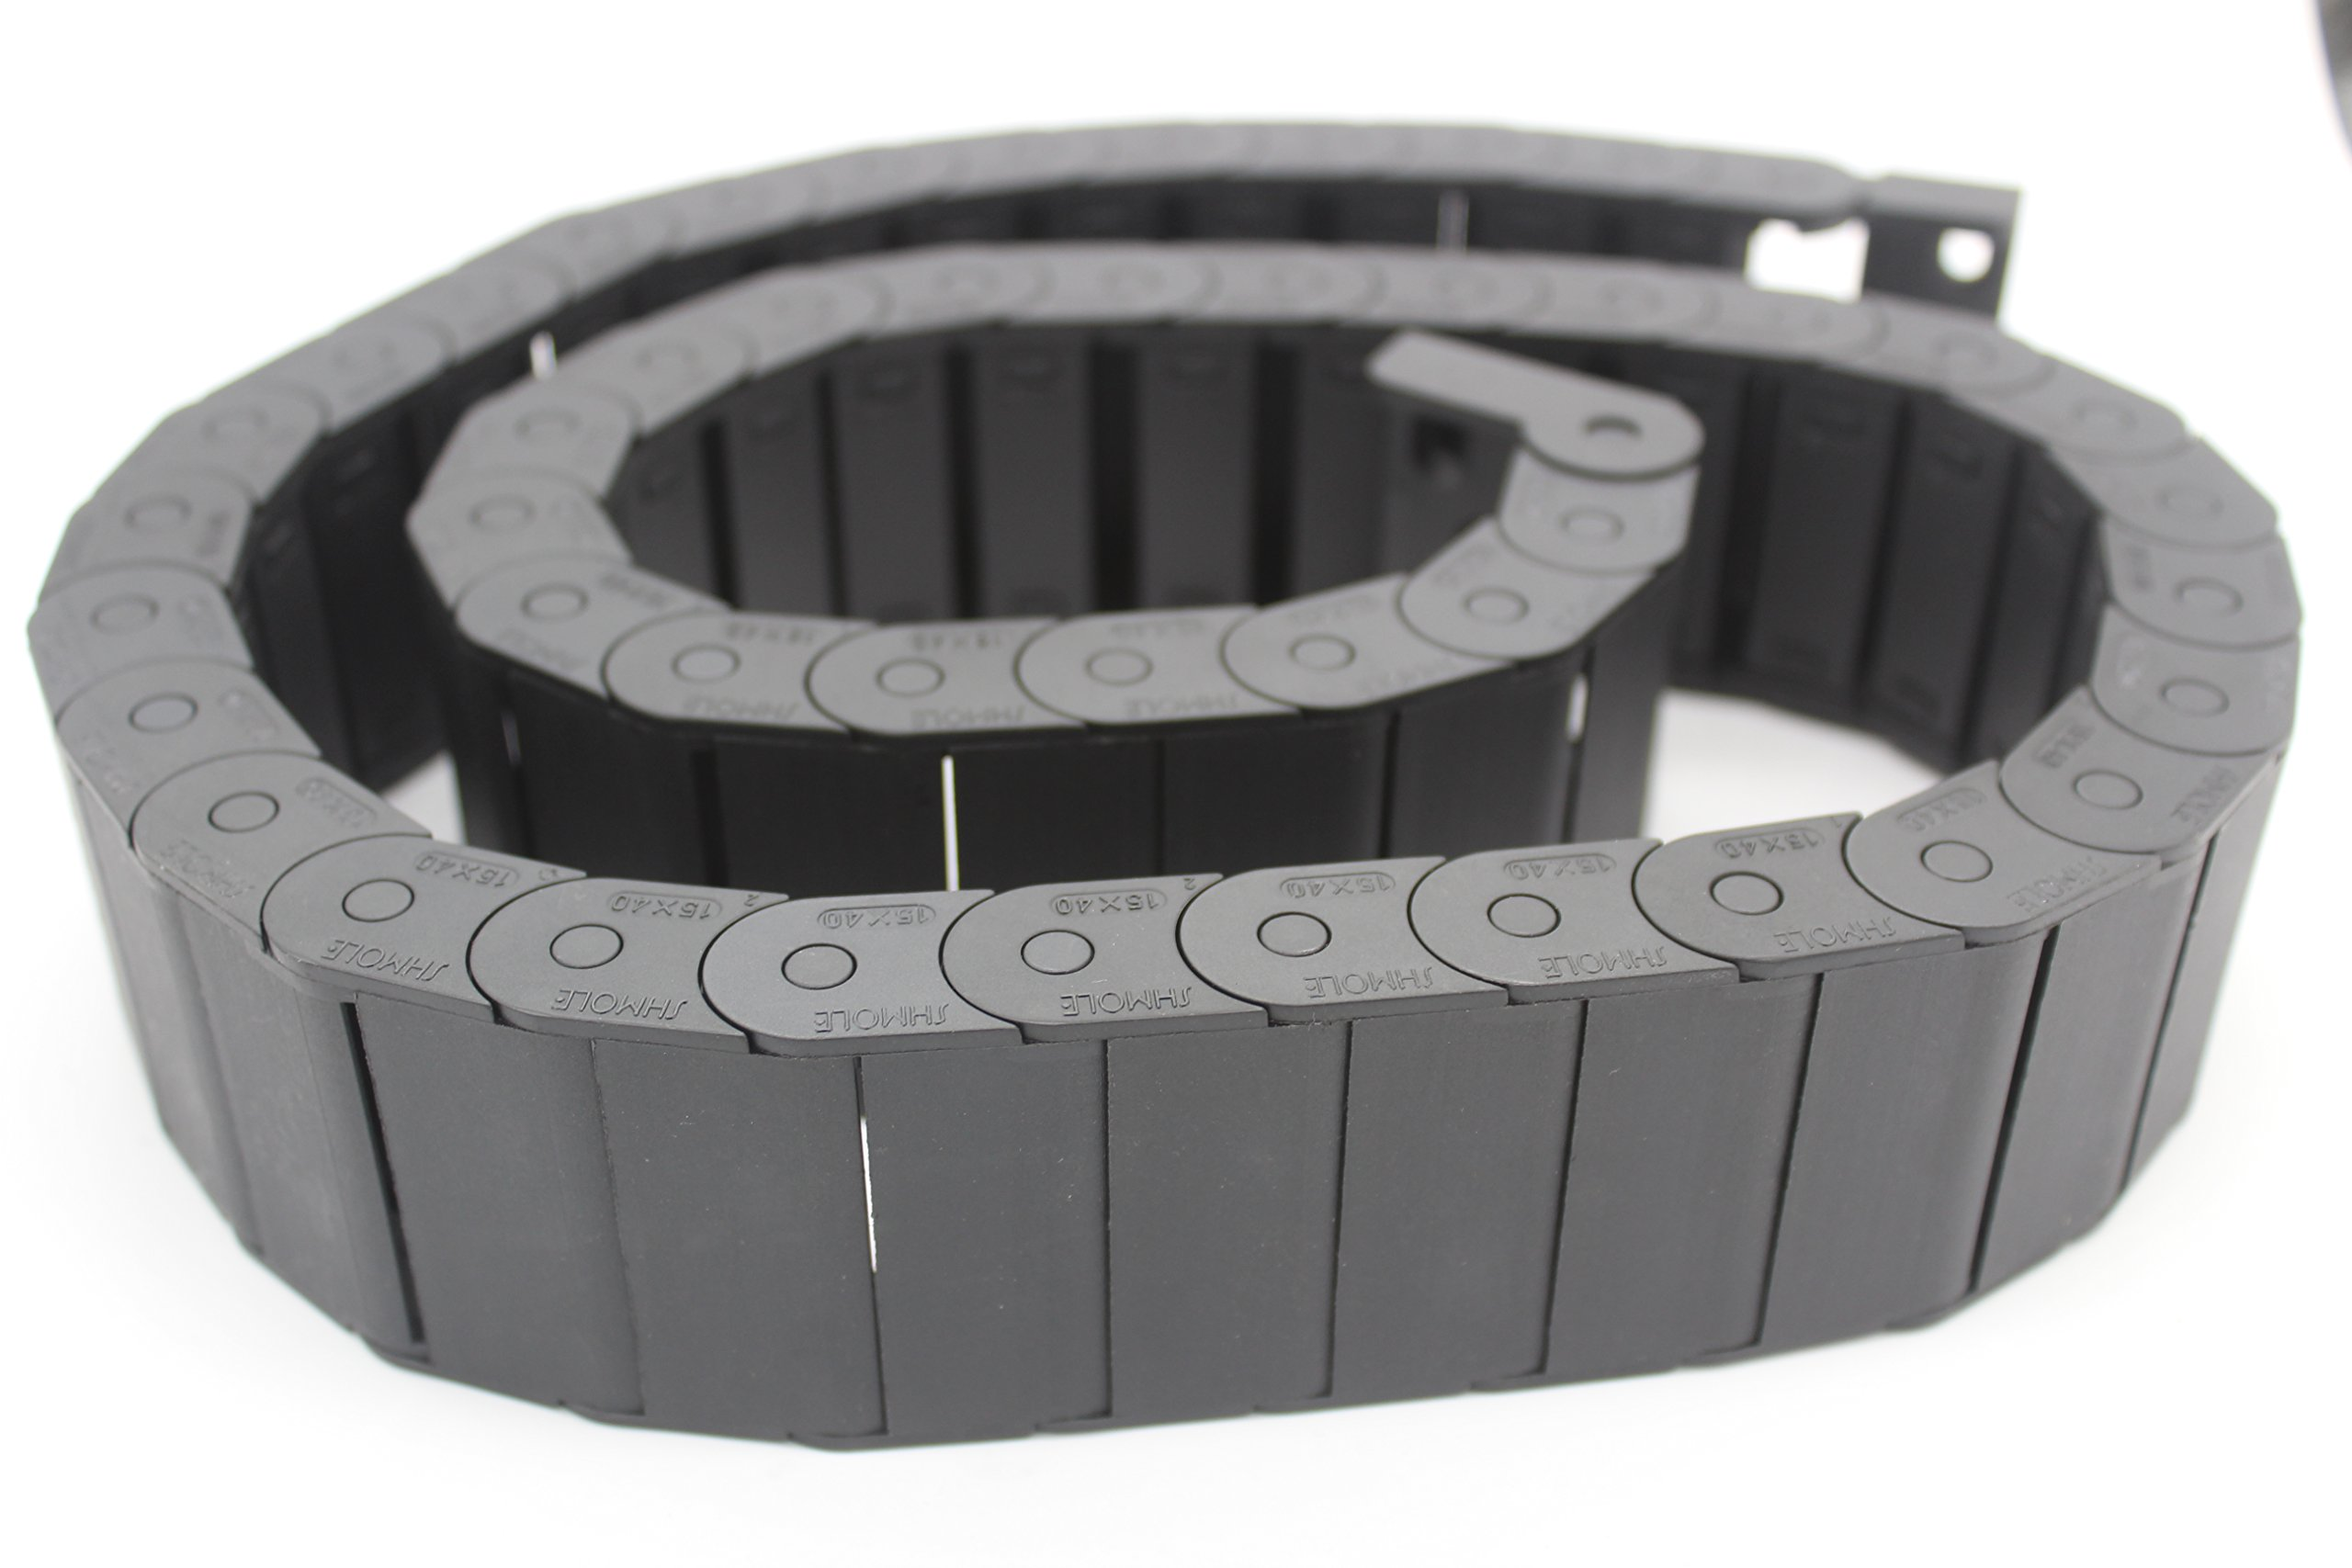 MAJIAWEI PlasticTowline CNC Machine Tools Cable Carrier Drag Chain (15X40mm)